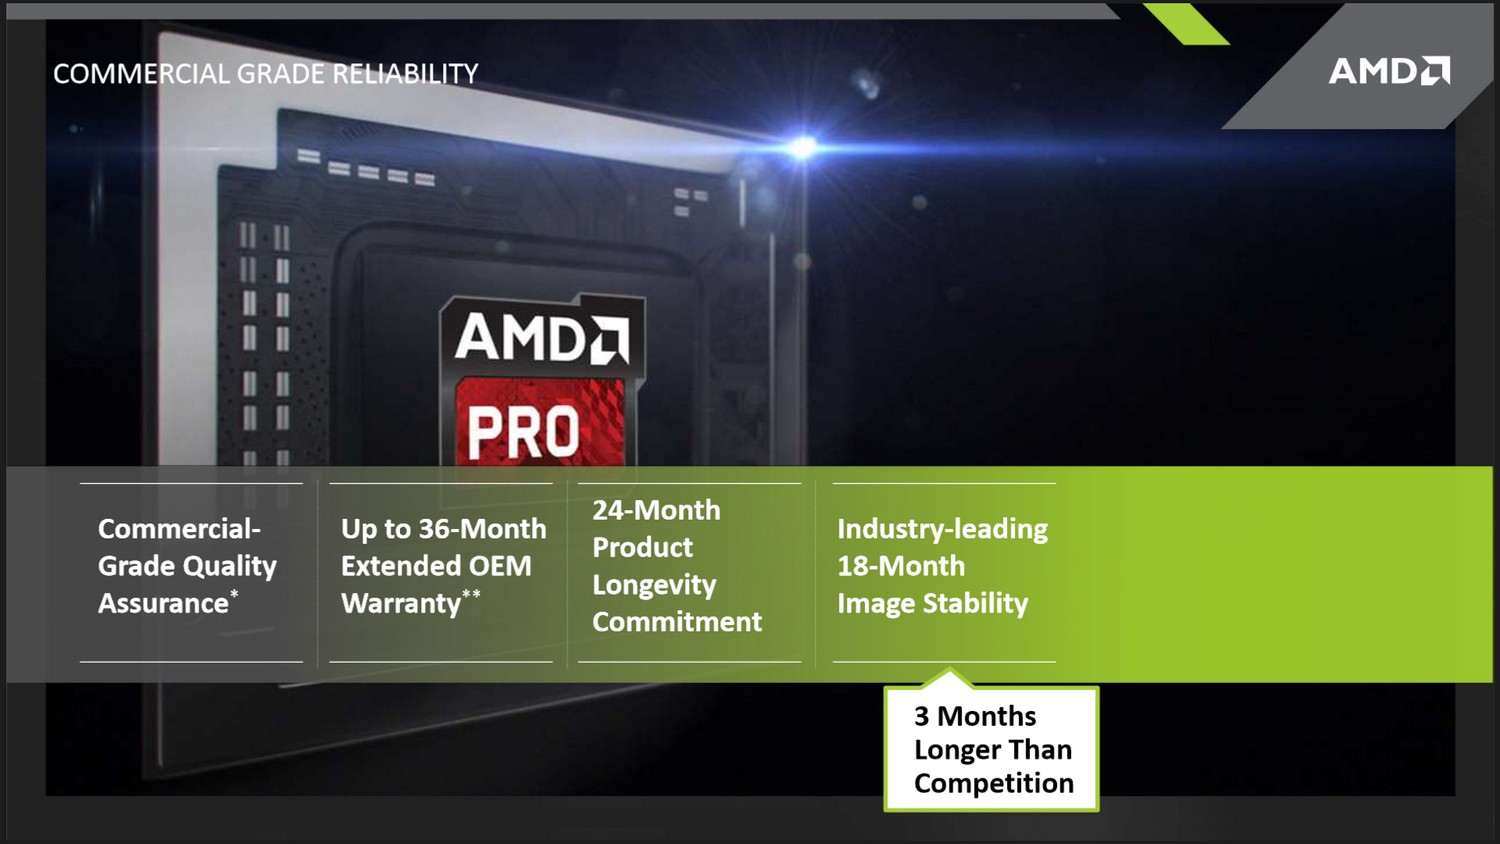 AMD PRO Features